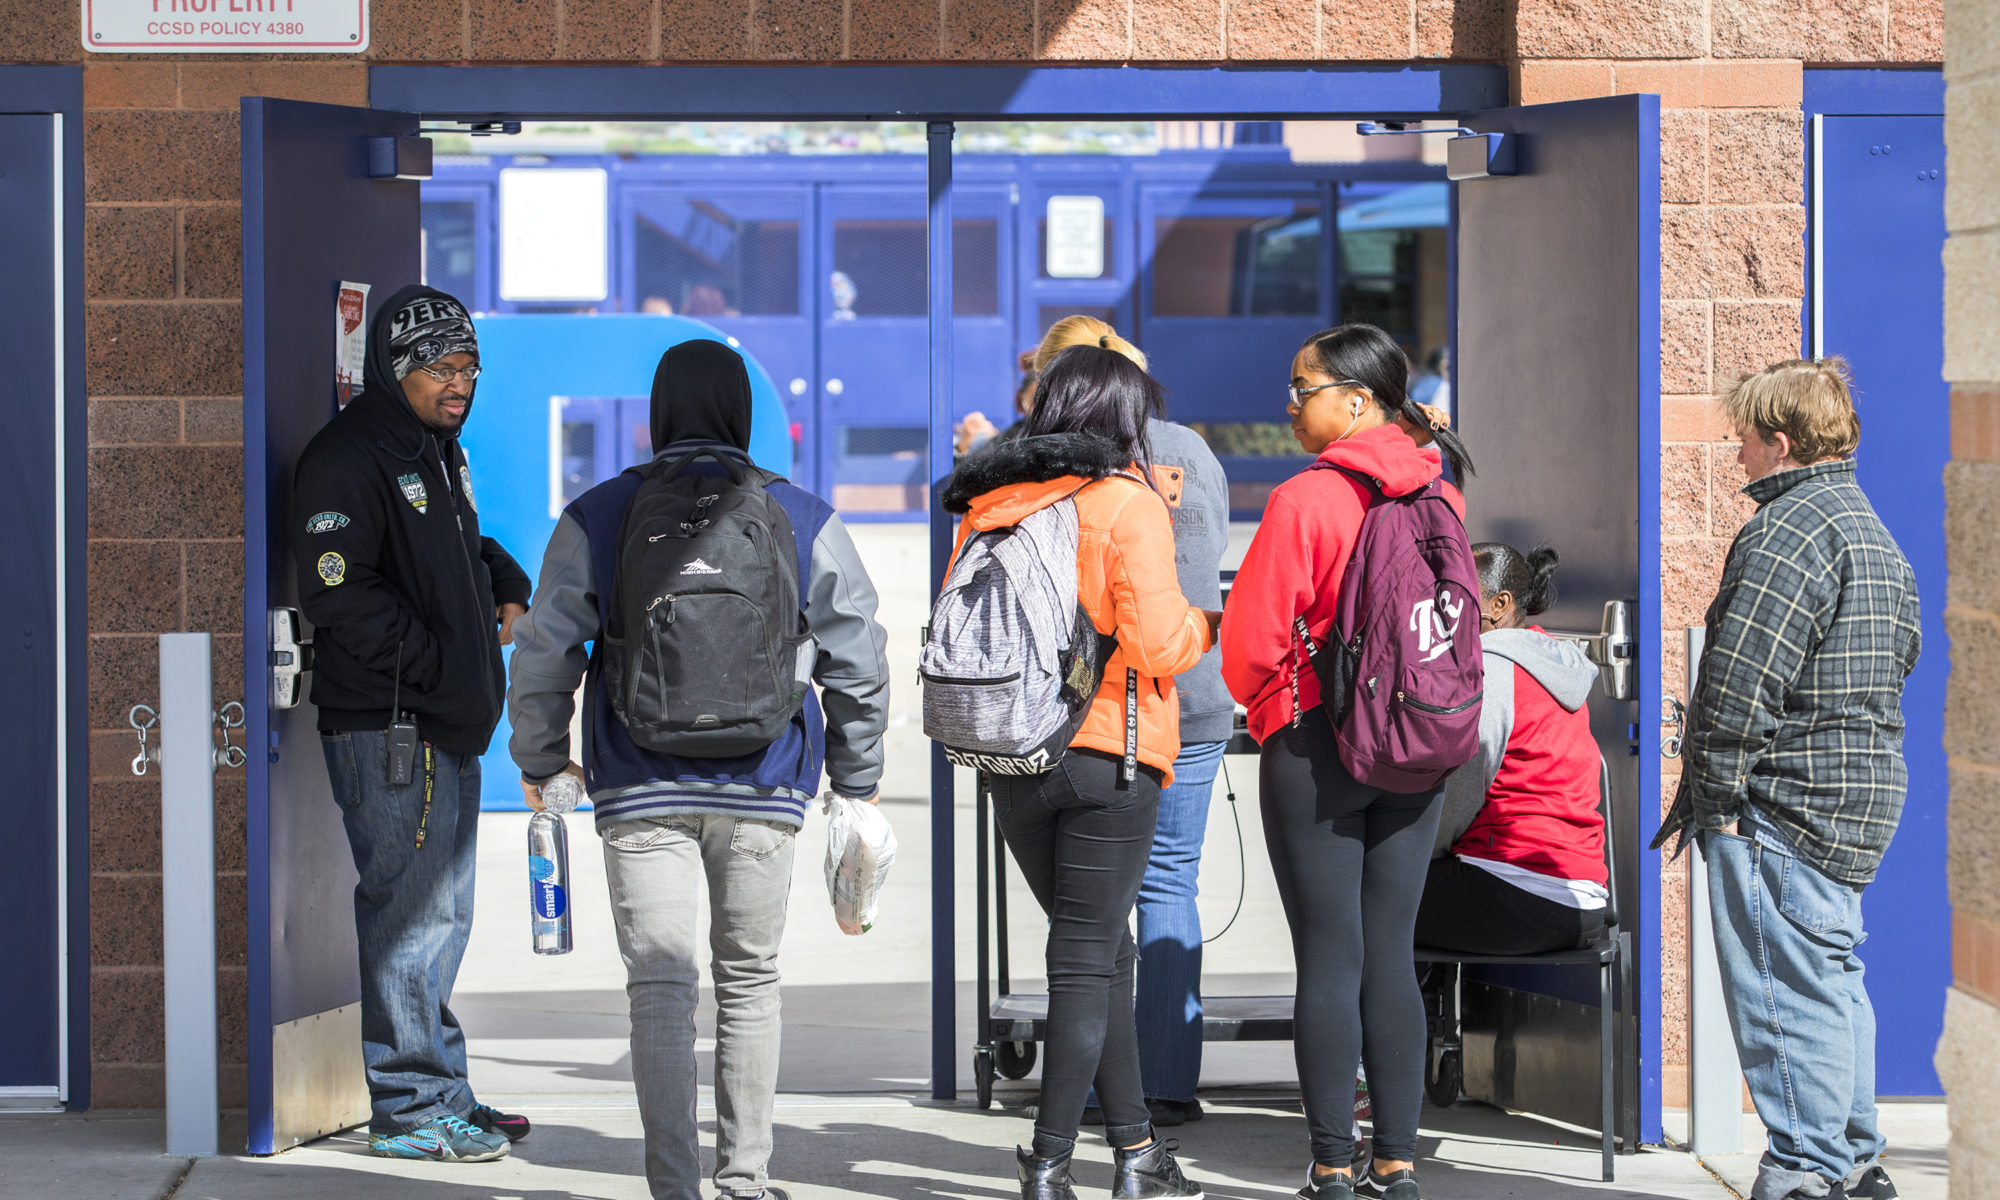 Students walking through a school security checkpoint